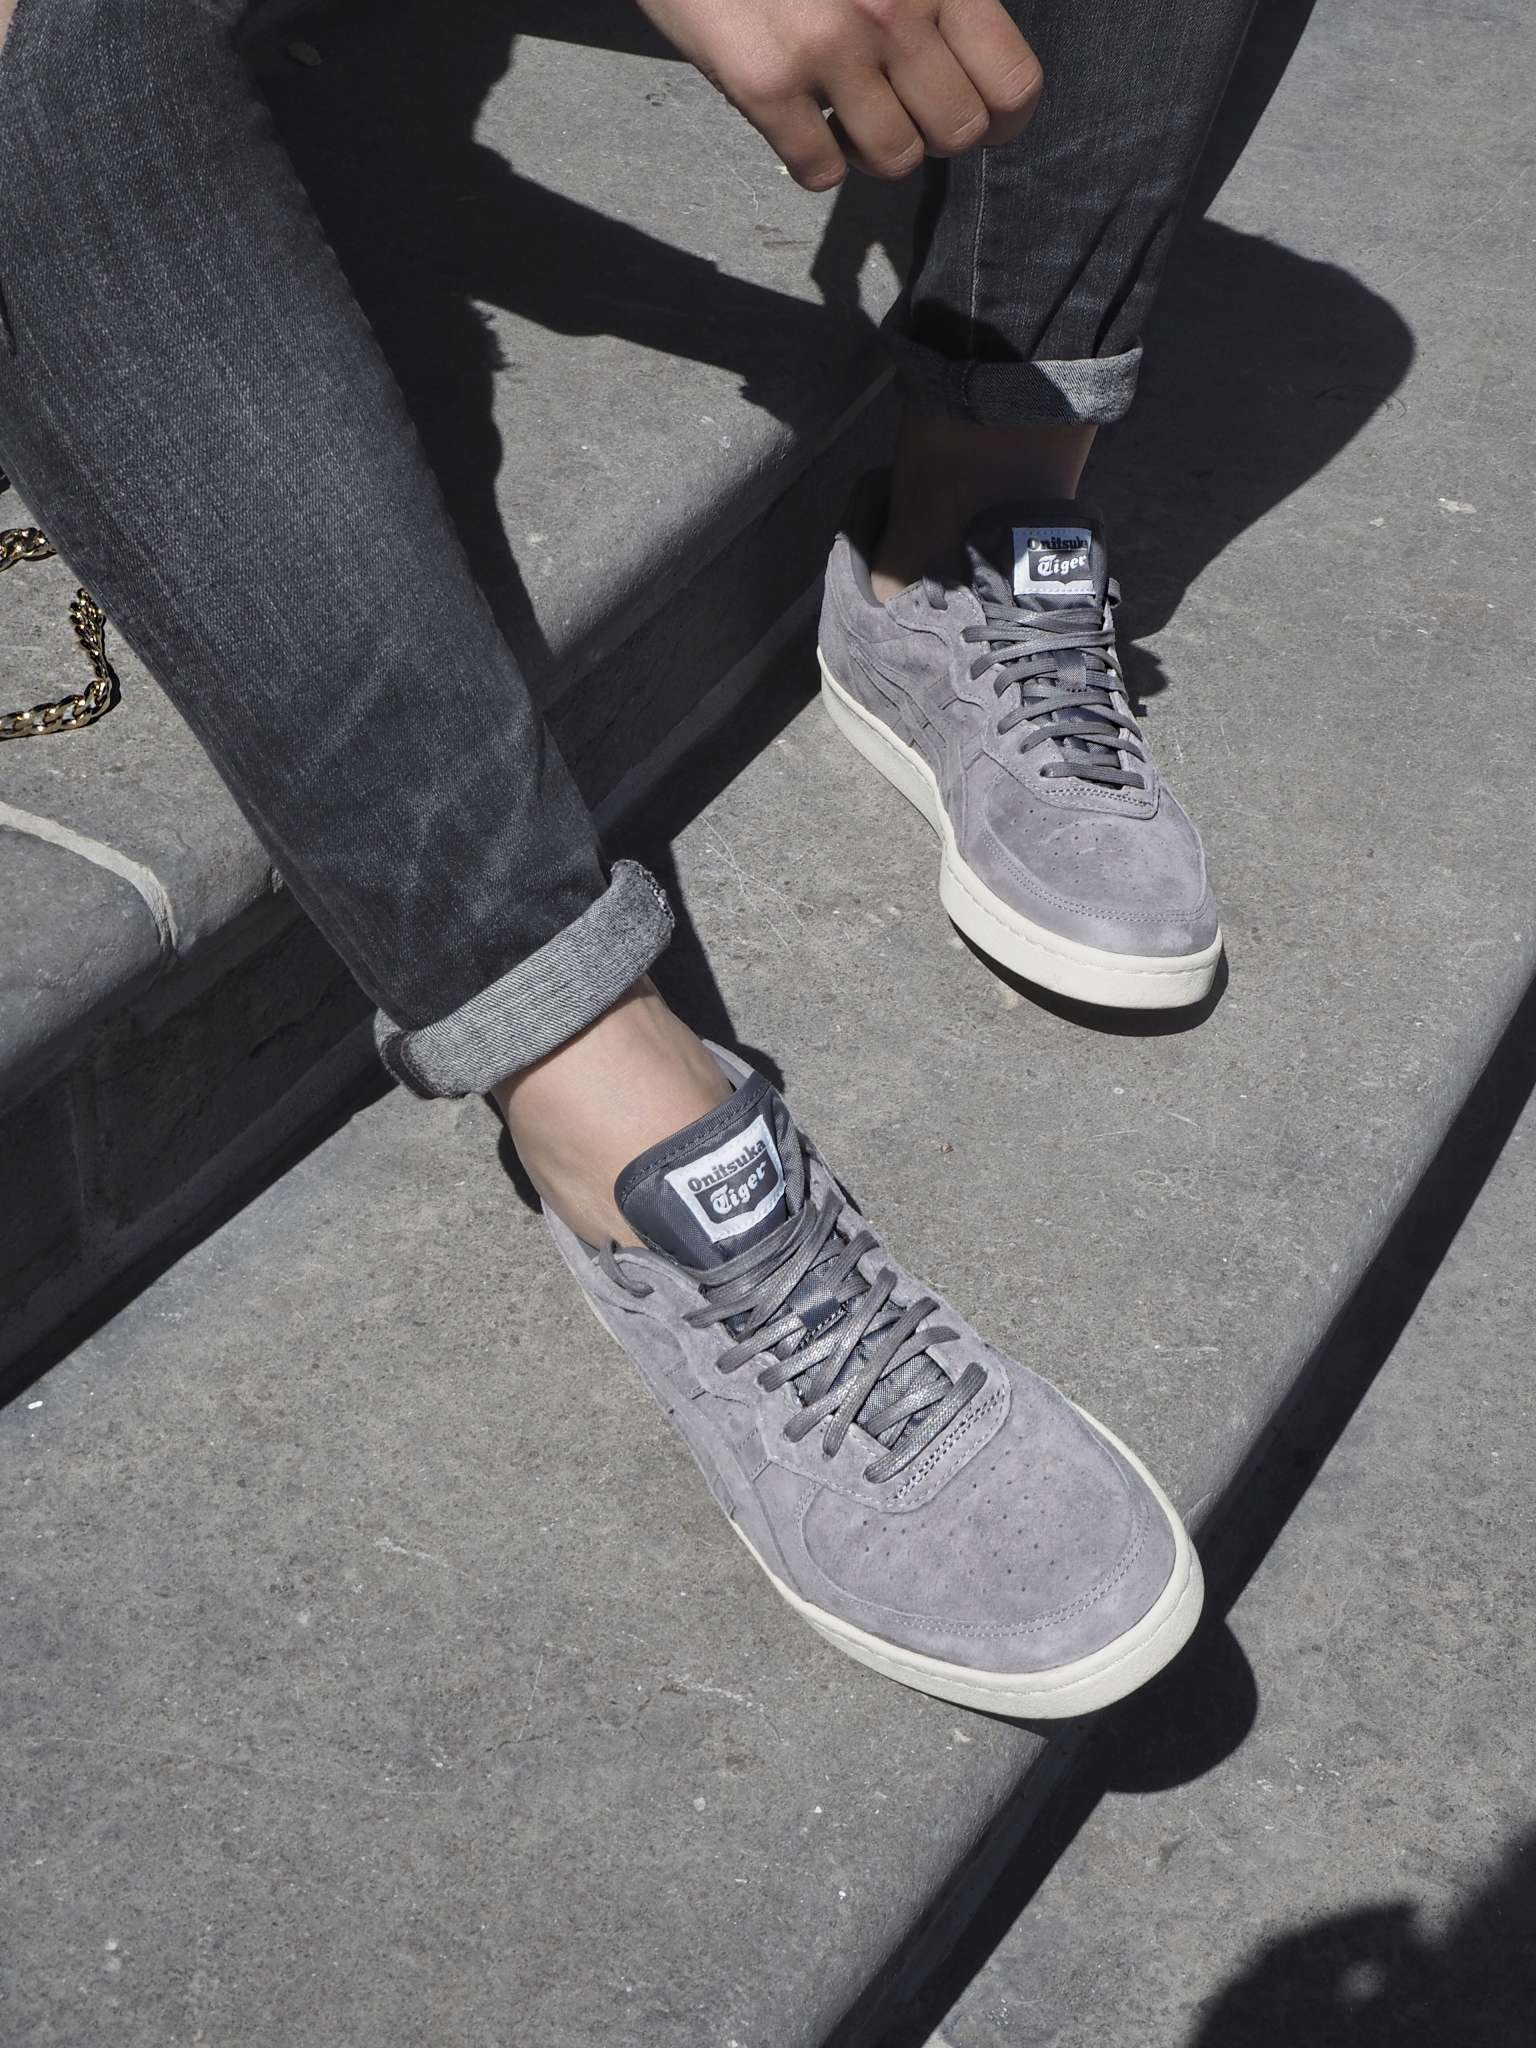 citizen-of-humanity-colmar-crossover-bag-grey-jeans-grey-sneakers-Jewelry-by-Ad-onitsuka-tiger-ripped-jeans-round-sunglasses-skinny-jeans-stripes-sweater-the-rubs-tommy-hilfiger-zero-uv